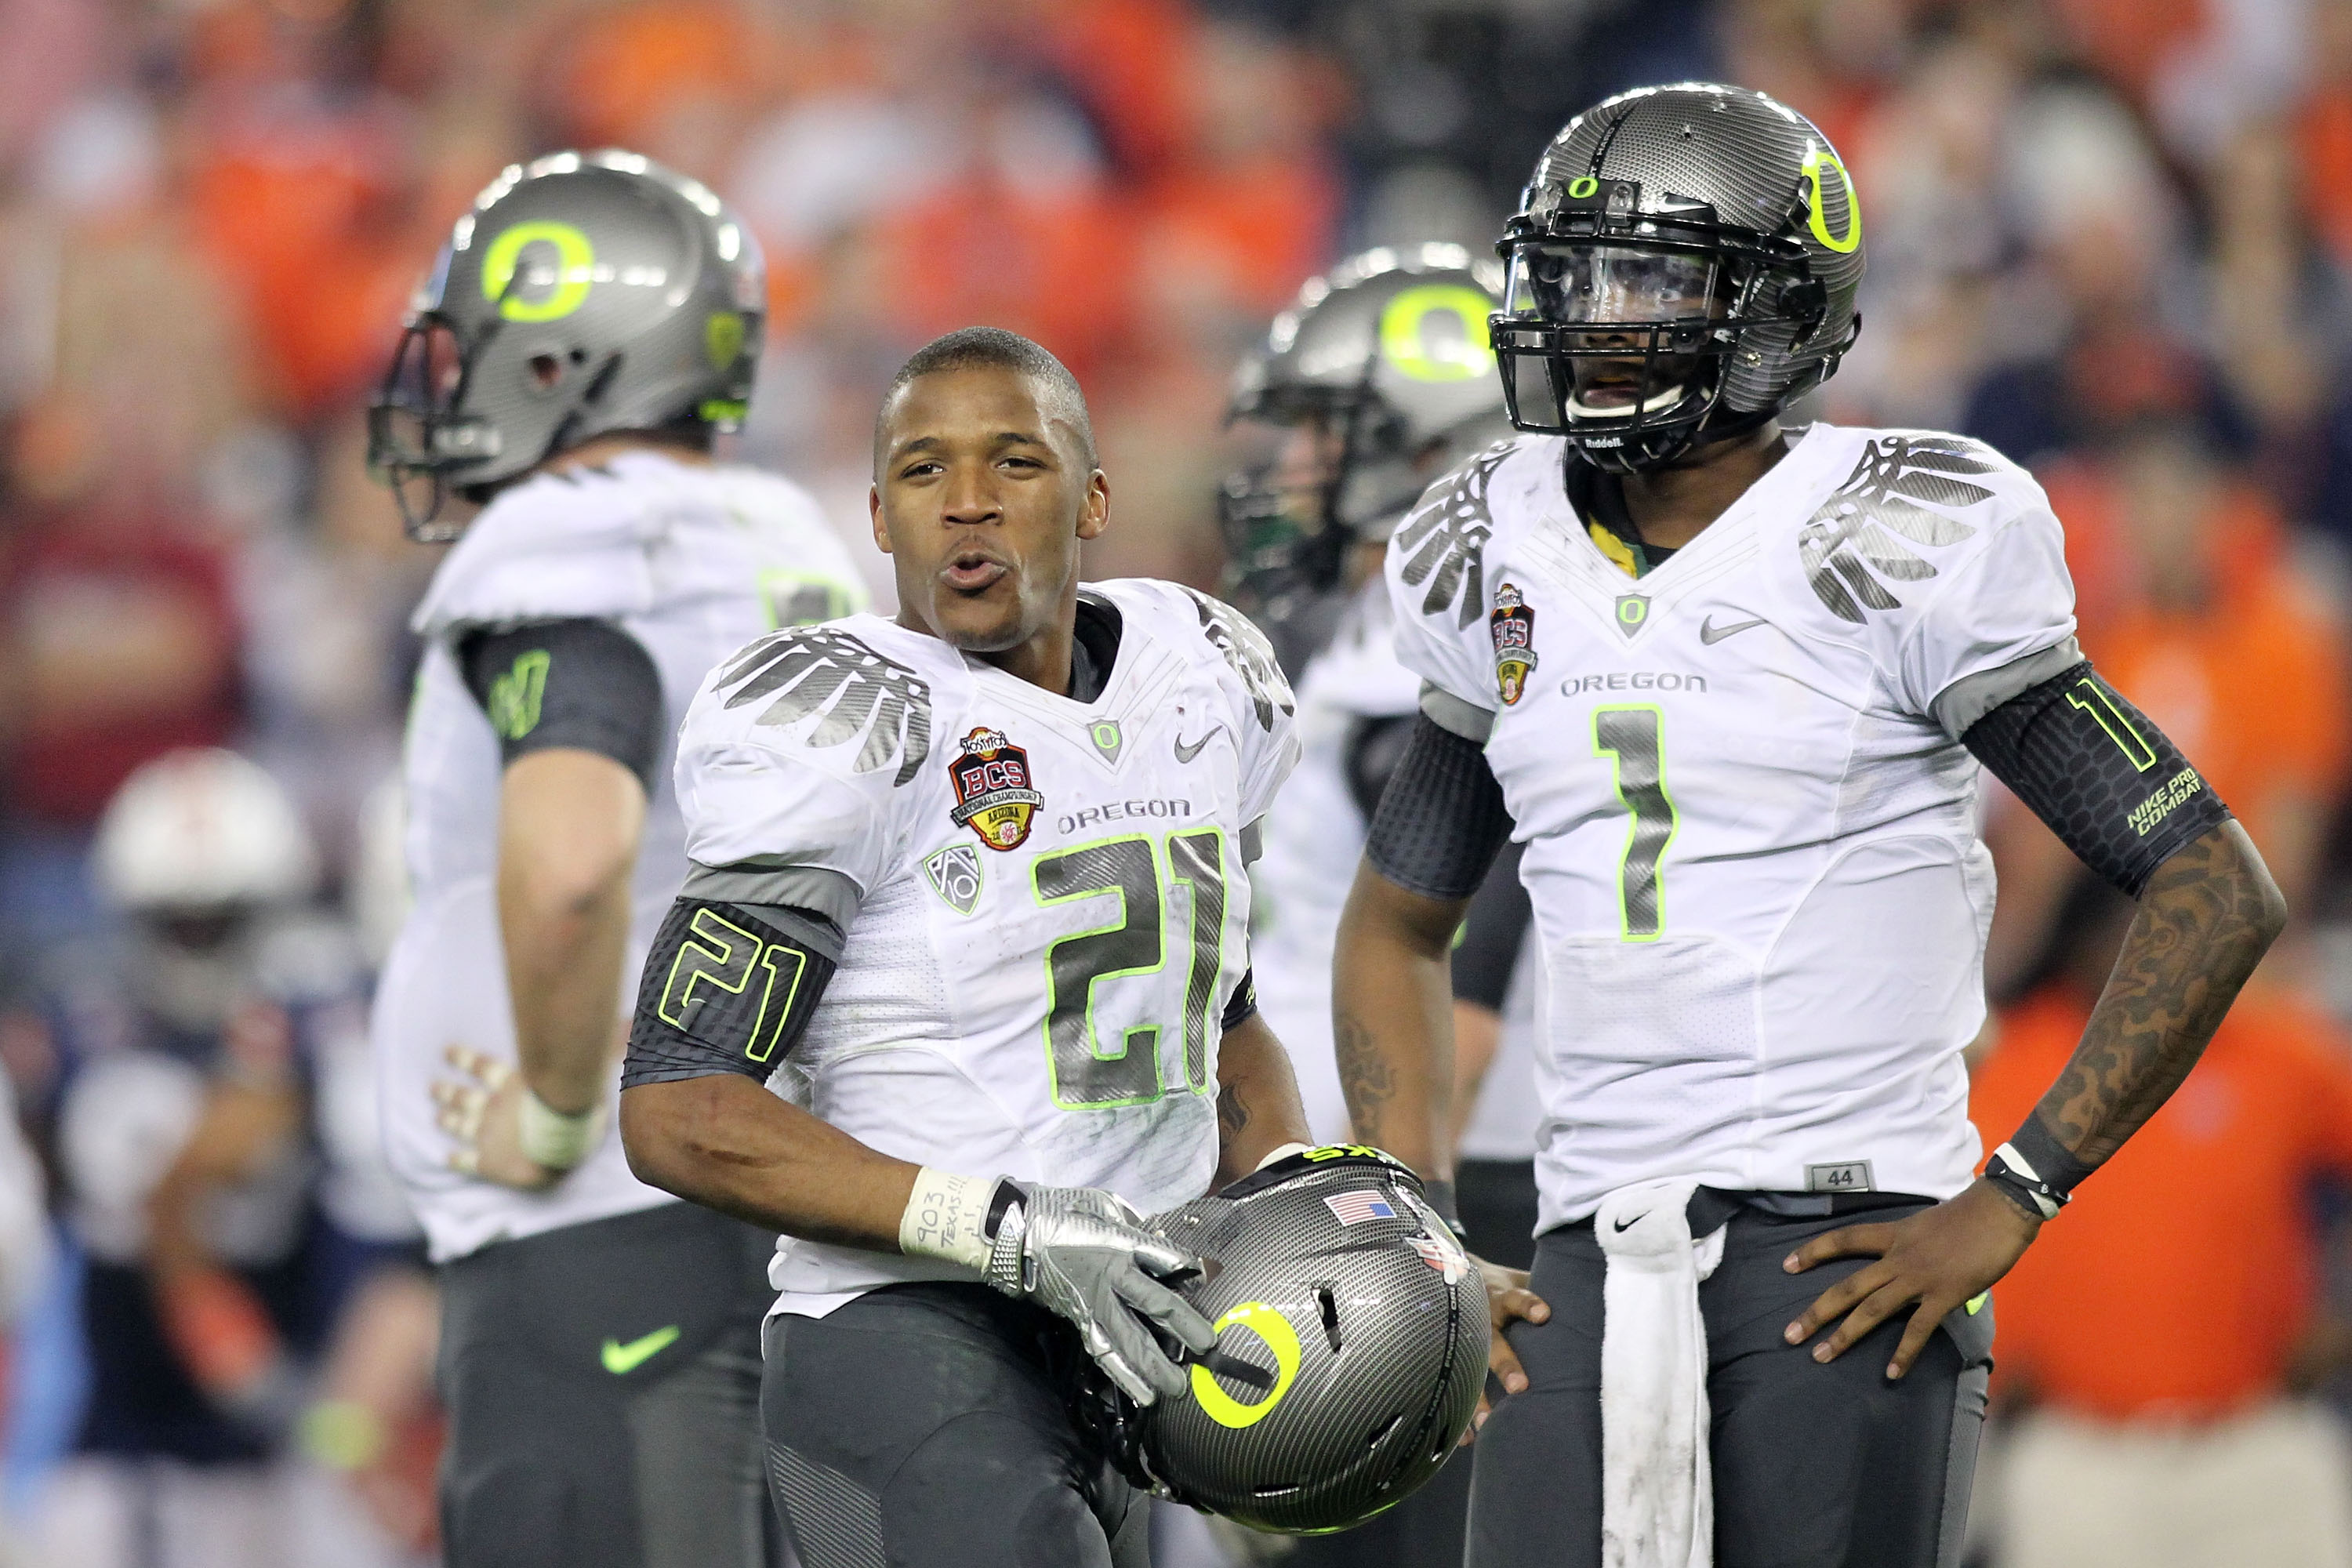 GLENDALE, AZ - JANUARY 10: LaMichael James #21 and Darron Thomas #1 of the Oregon Ducks react to the Auburn Tigers during the Tostitos BCS National Championship Game at University of Phoenix Stadium on January 10, 2011 in Glendale, Arizona. (Photo by Jona